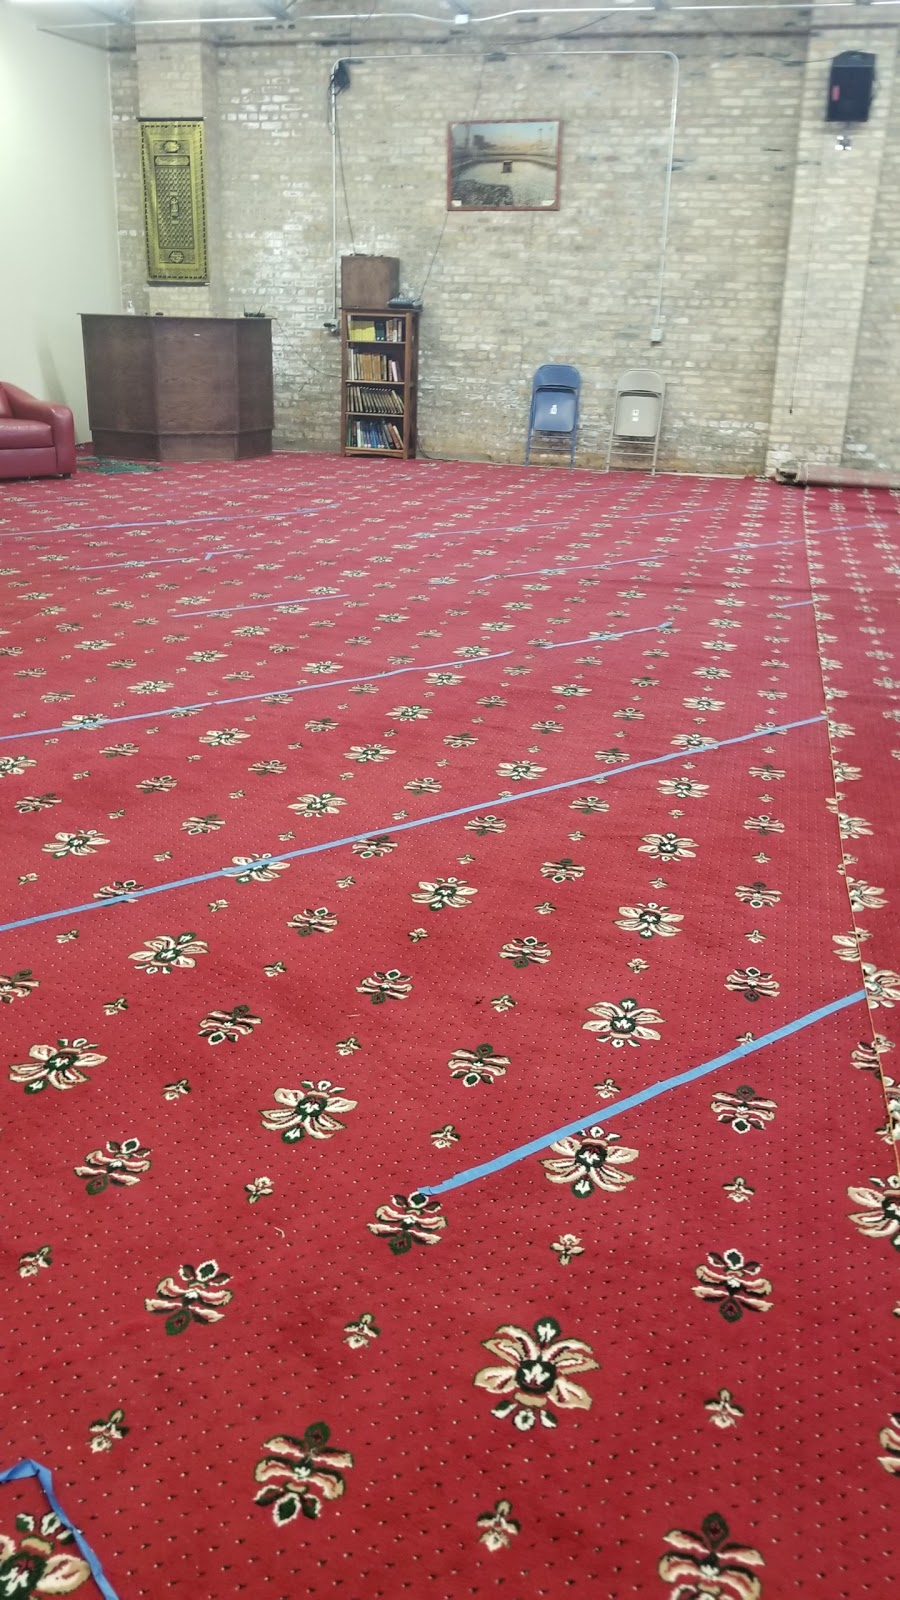 Masjed NationWide - mosque  | Photo 4 of 4 | Address: 4420 W 5th Ave, Chicago, IL 60624, USA | Phone: (773) 379-7690